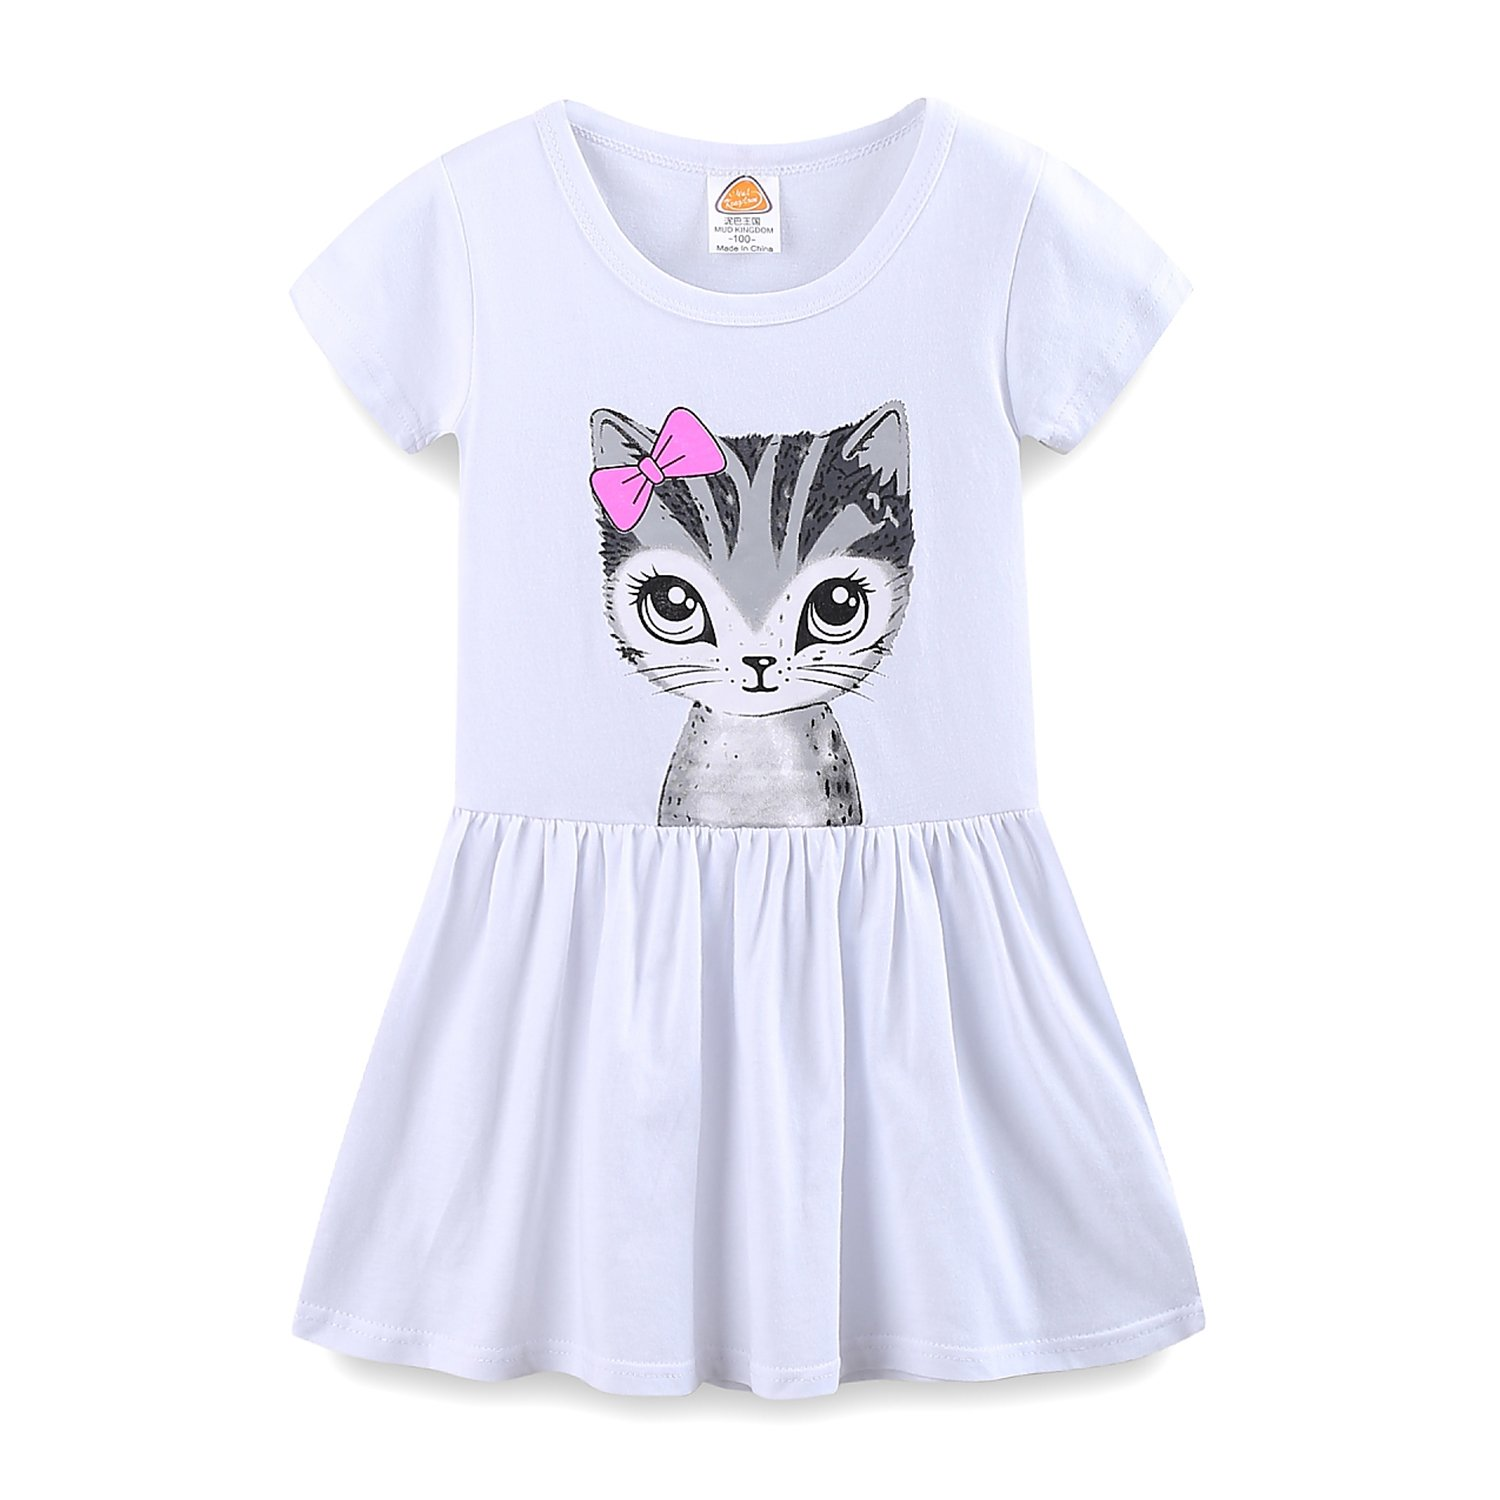 Mud Kingdom Toddler Girls Dresses Summer Clothes Cat Face 4T White